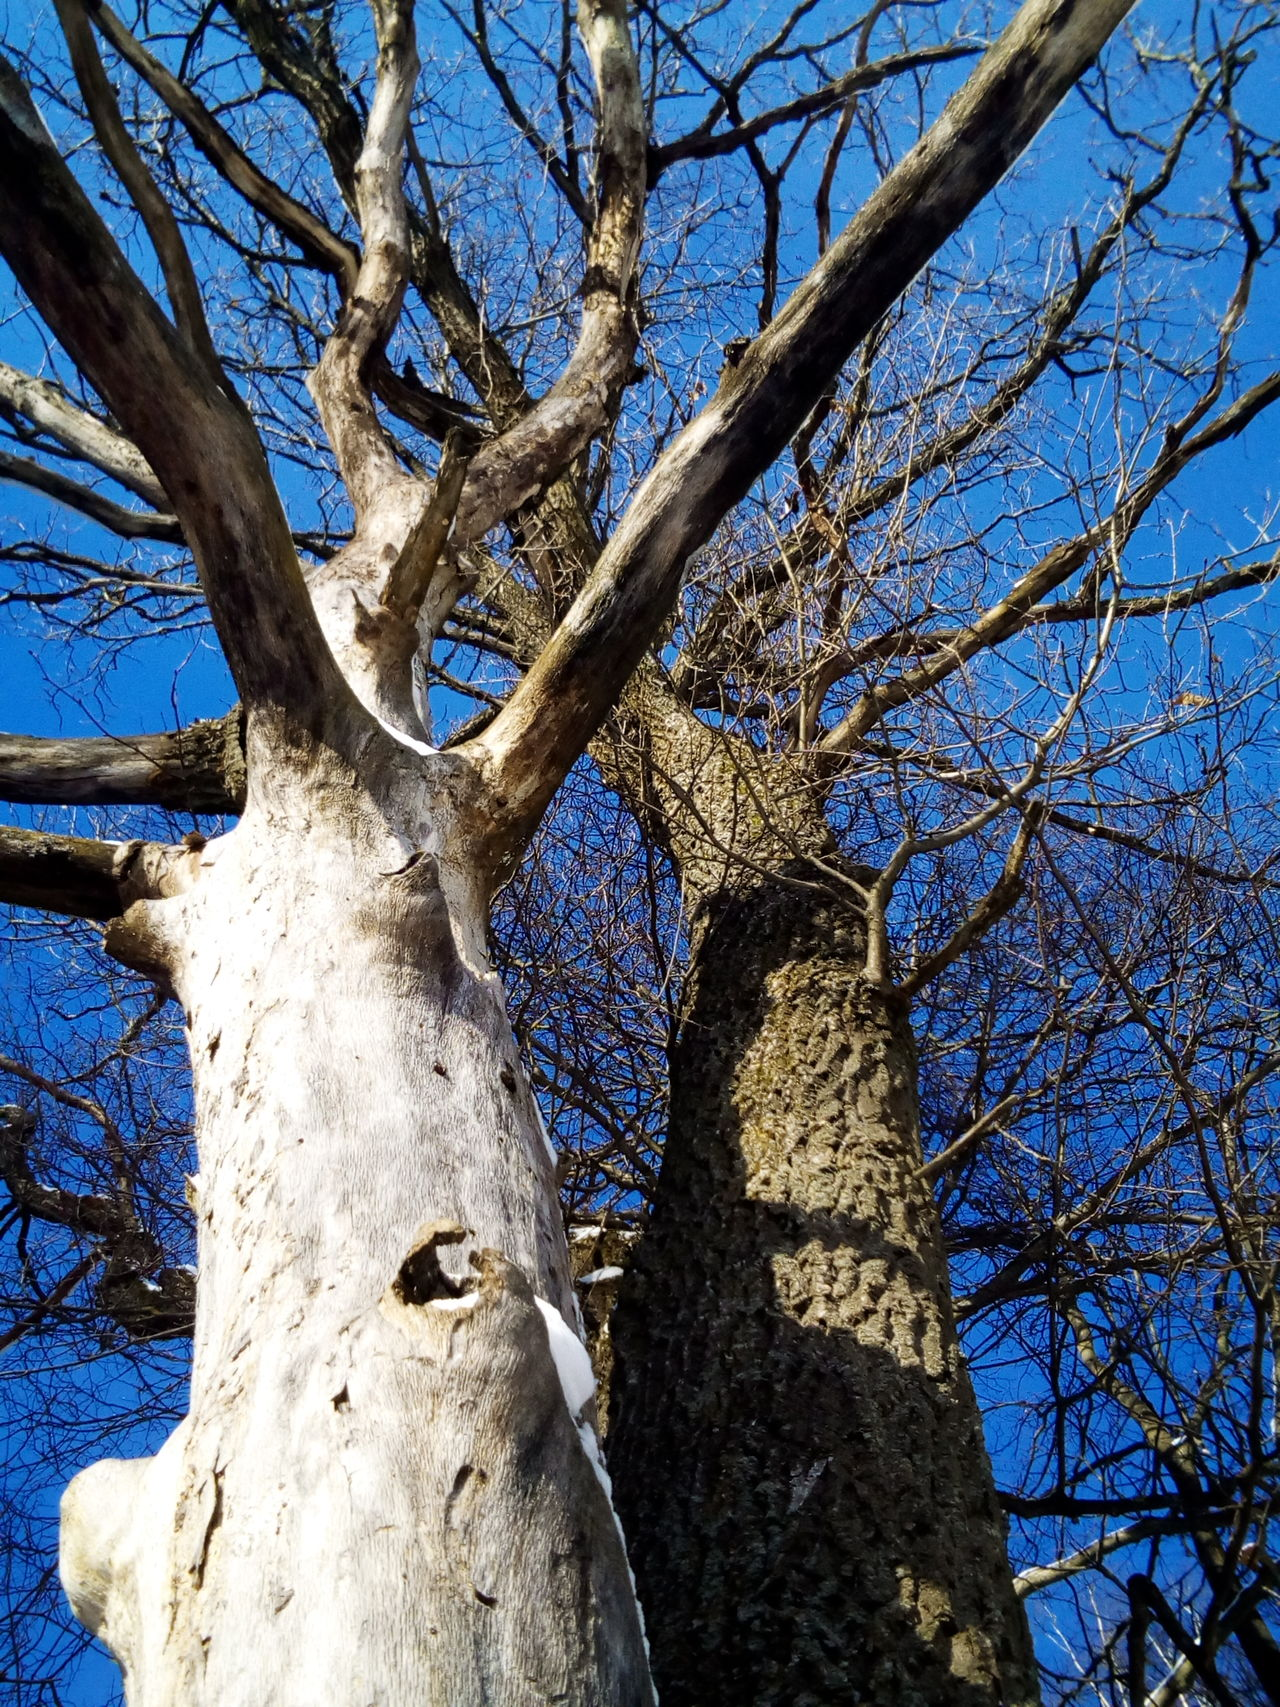 Tree Low Angle View Tree Trunk Day No People Branch Nature Sky Outdoors Bare Tree Close-up Growth Frozen Sunlight Landscape The Great Outdoors - 2016 EyeEm Awards Nature_collection EyeEm Nature Lover Blue Clear Sky Weather Animal Themes Tranquility Beauty In Nature Silhouette